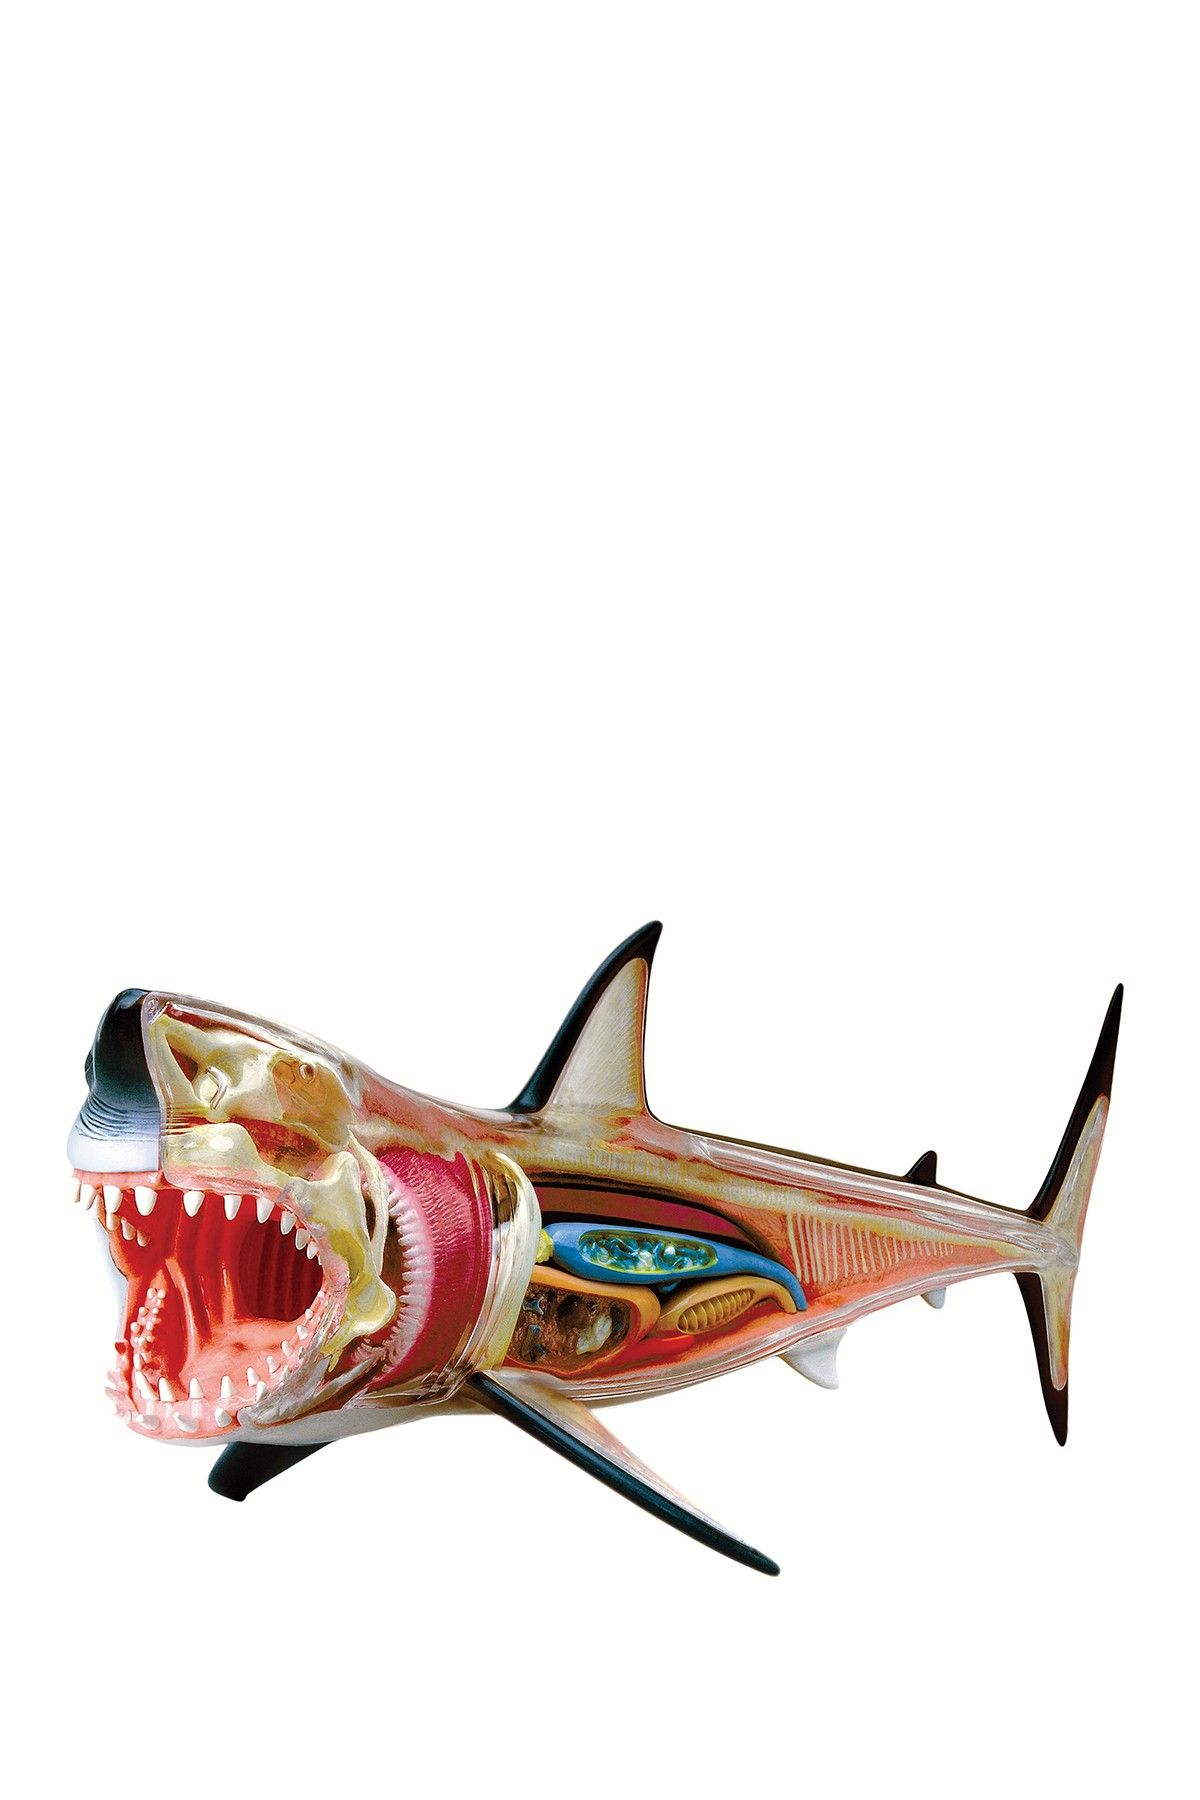 4D Animal Great White Shark Anatomy 20-Piece Set | Shark and Toy